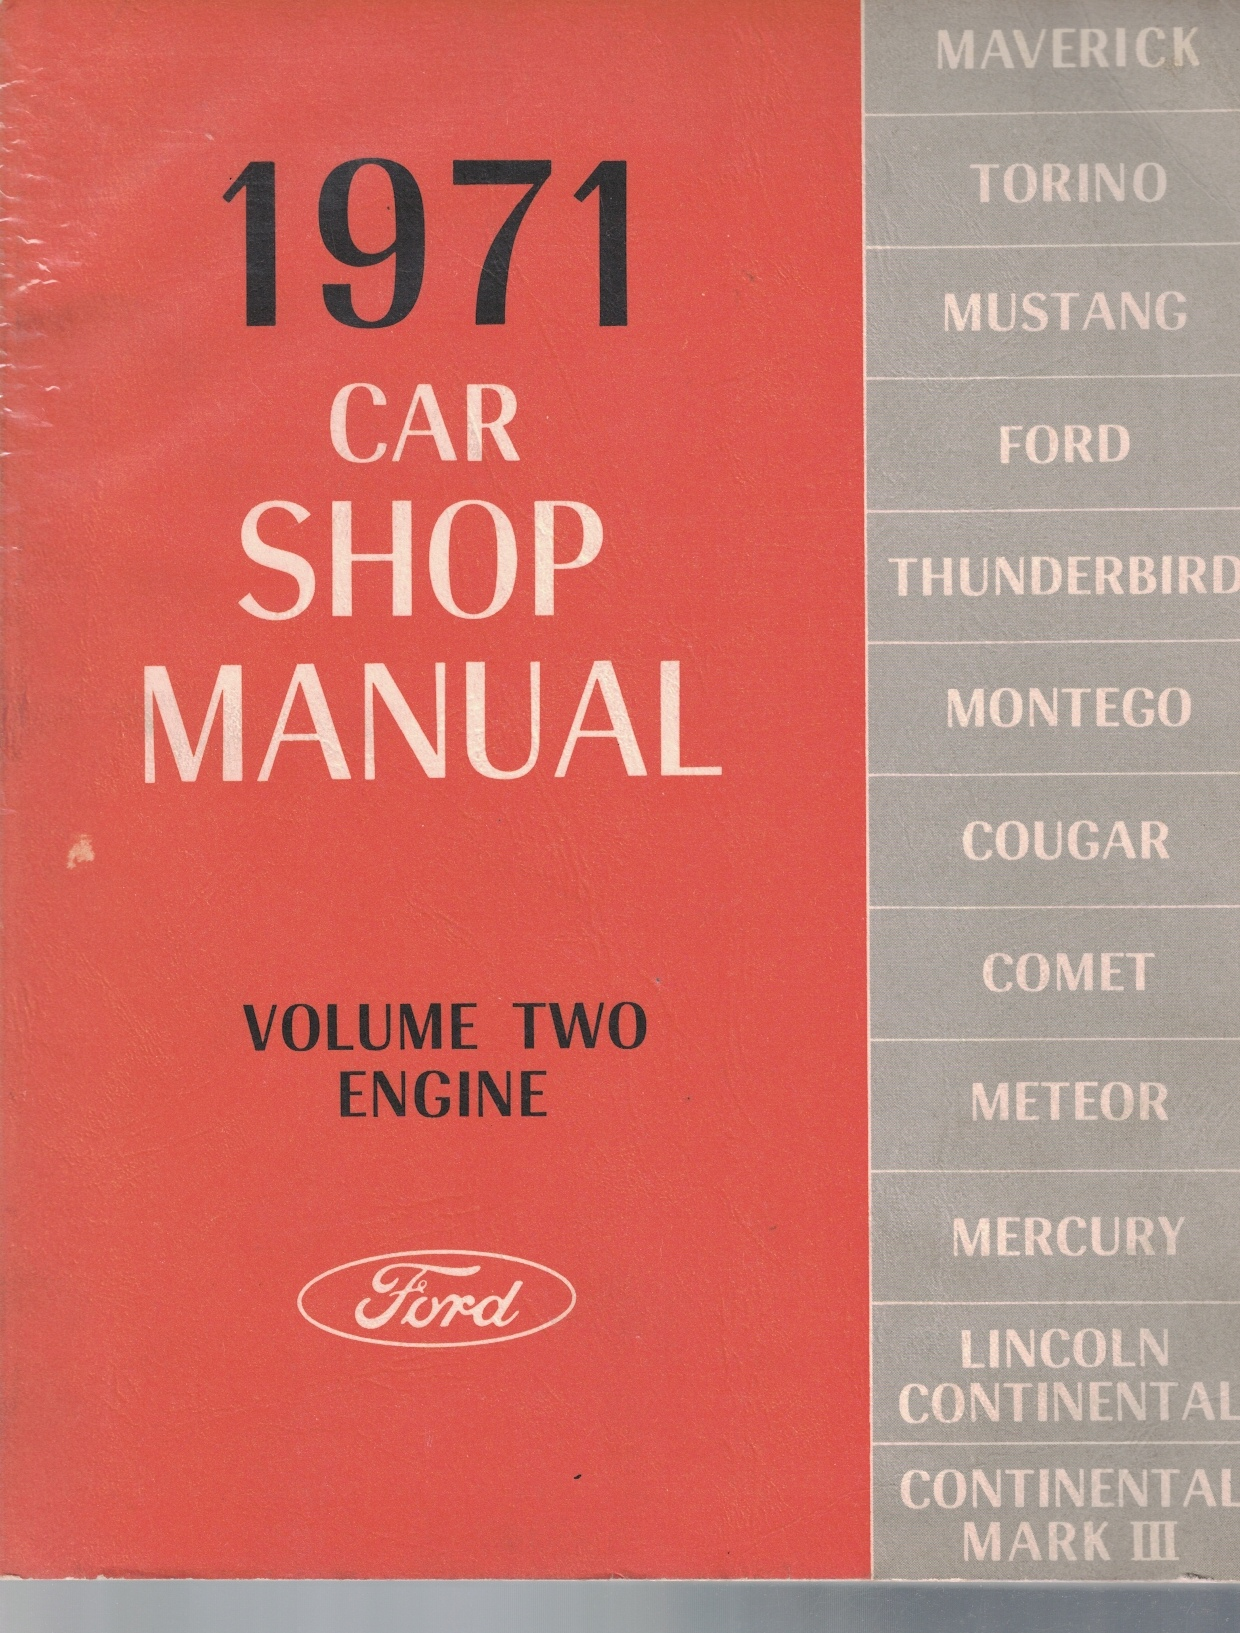 Image for 1971 Ford / Mercury / Lincoln Car Shop Manual, Volume 2: Engine [Original Service Manual] [One Volume Only]